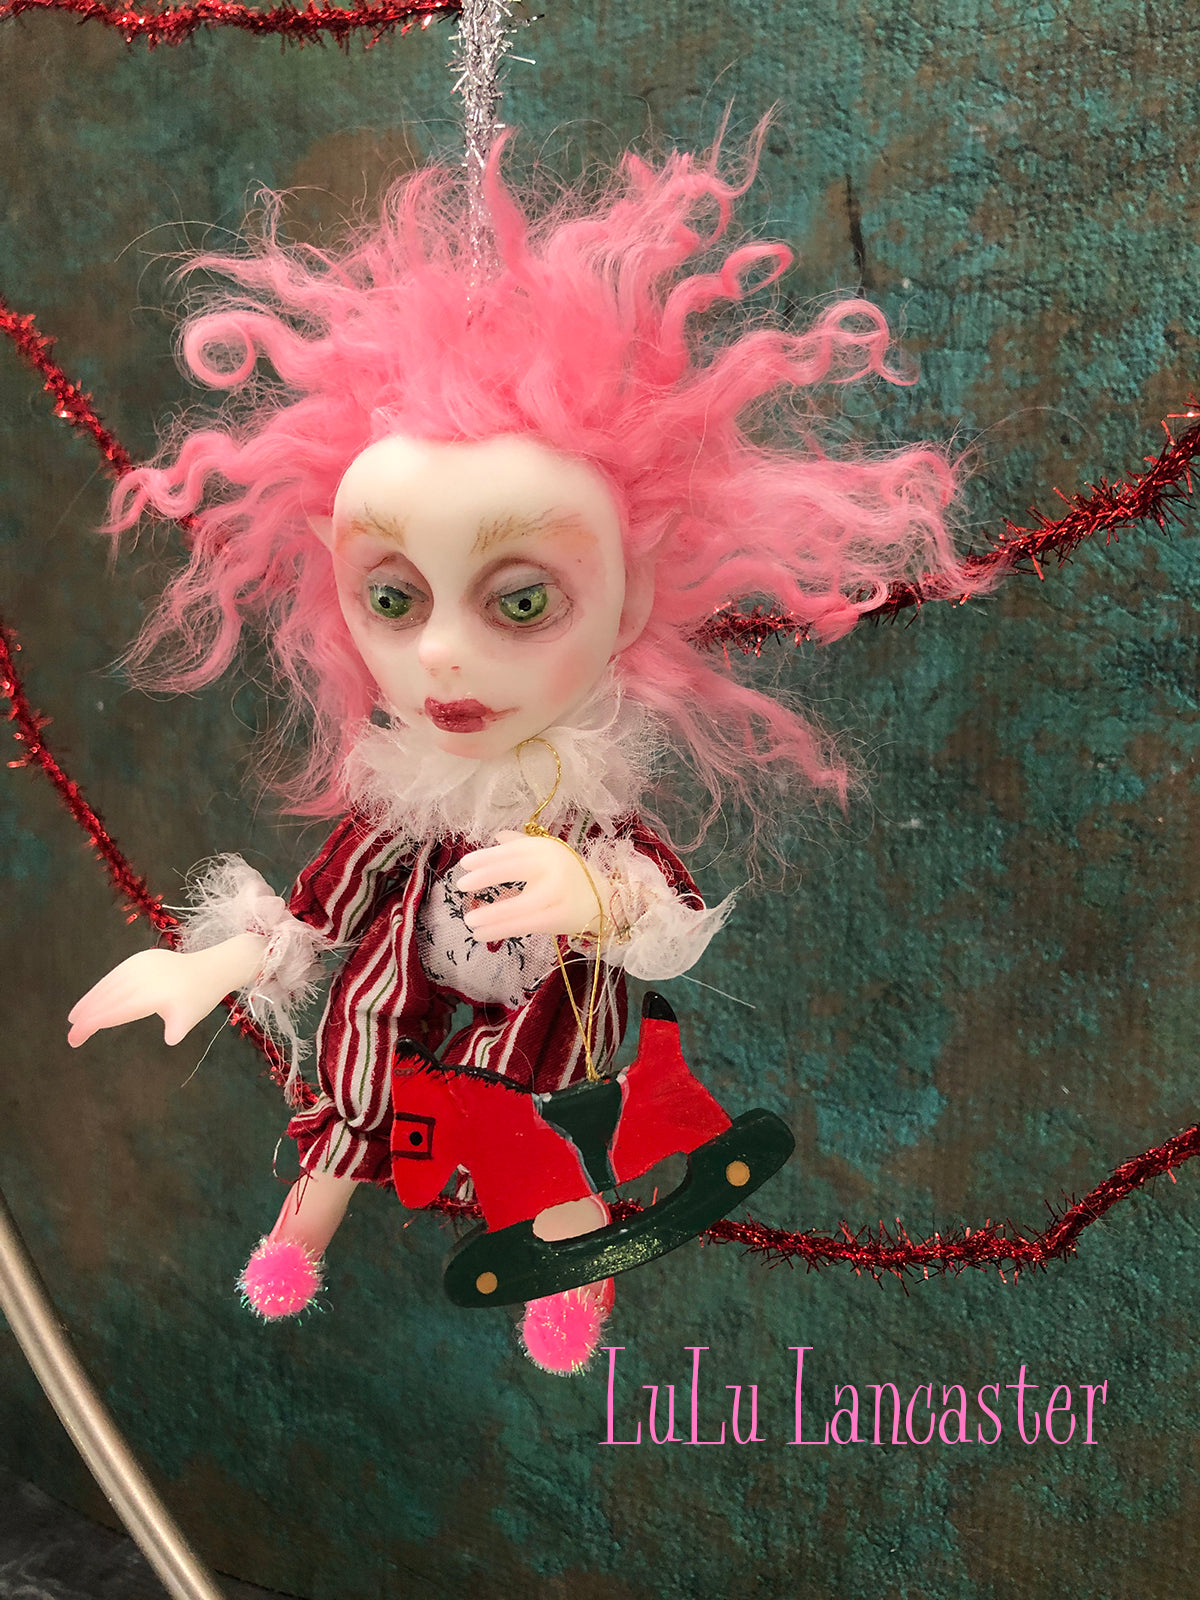 Glitzy Mini Hanging Elf Christmas Art Doll Ornament Original LuLu Lancaster